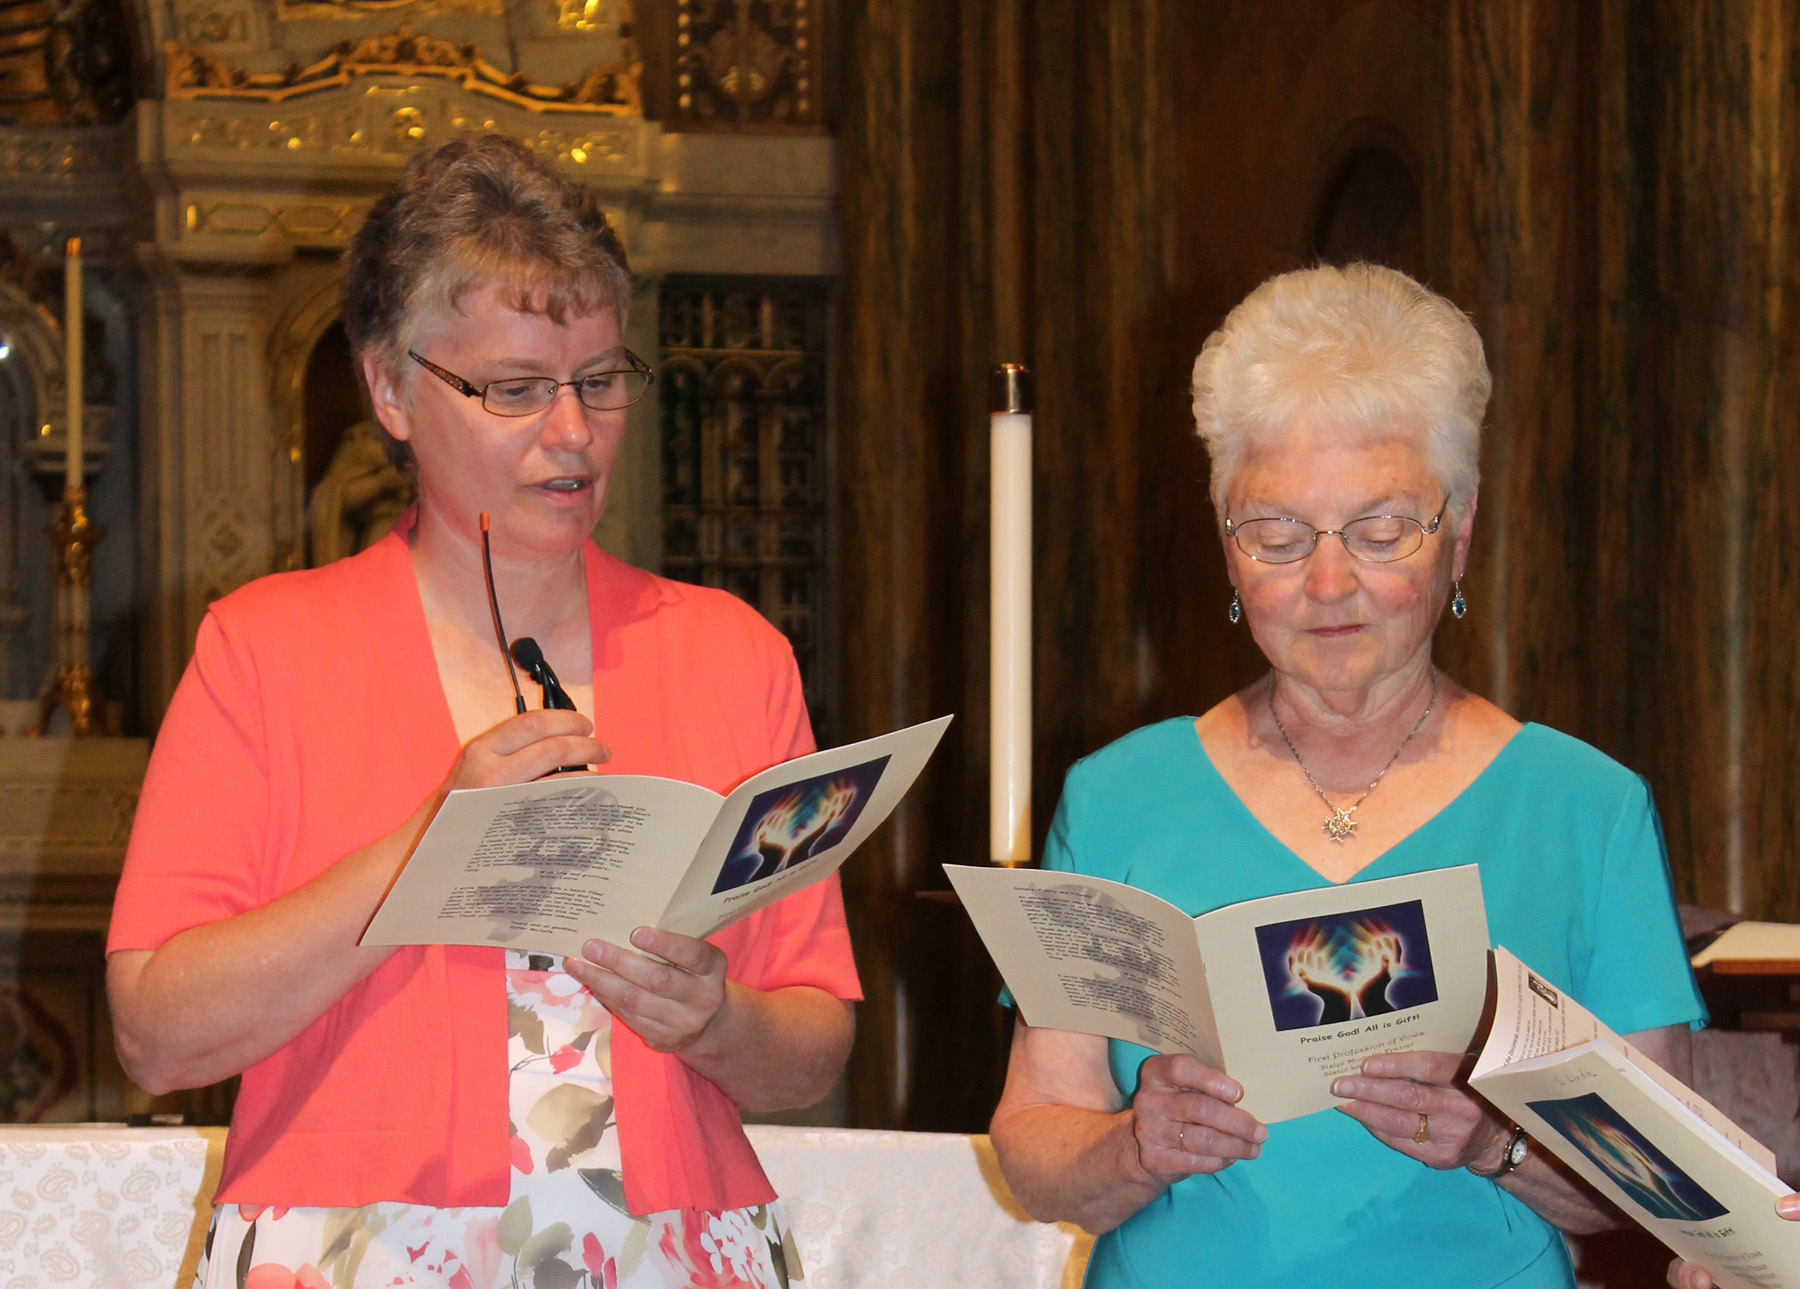 Sister Laurie, saying vows, and Sister Karen